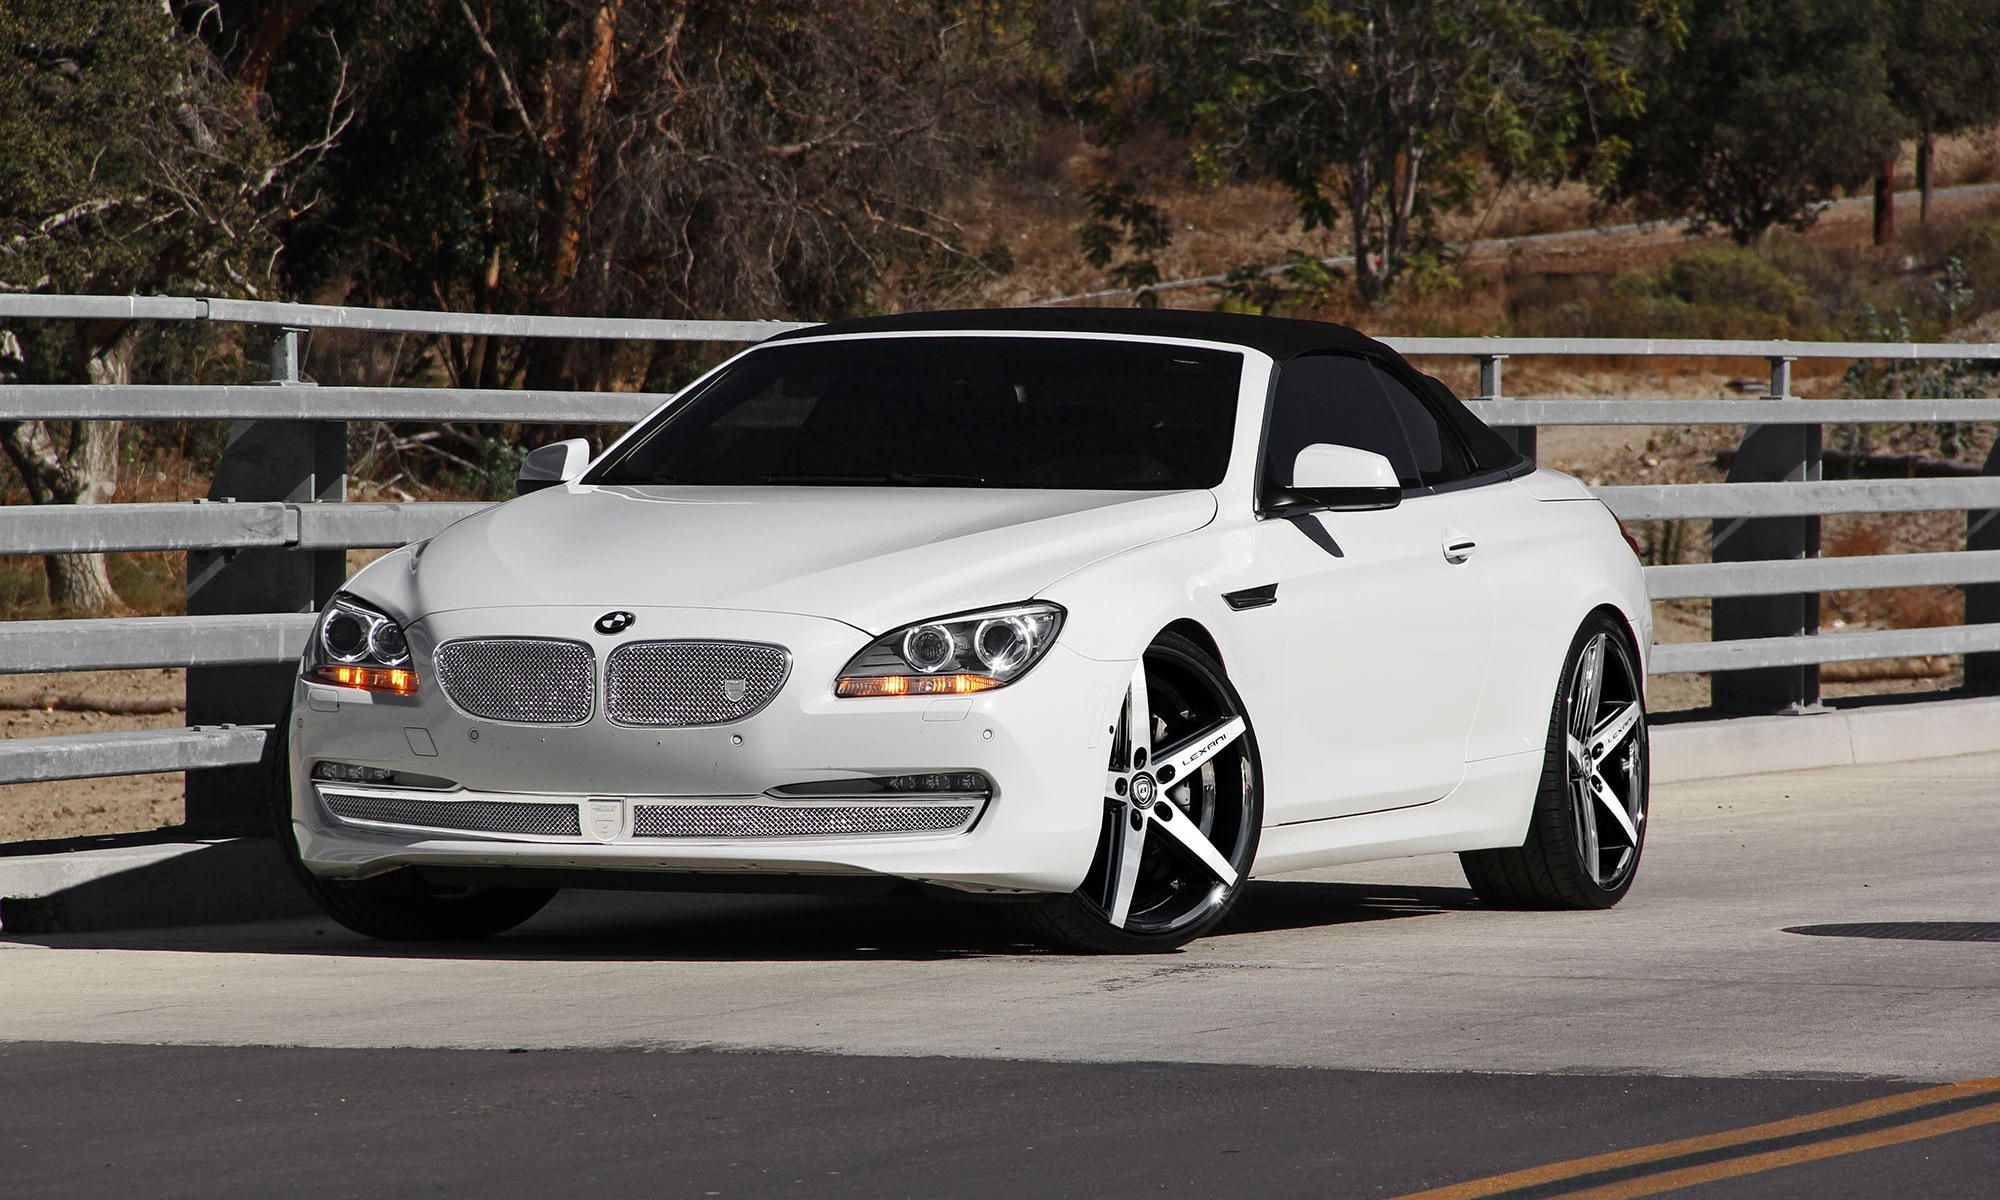 bmw 2013 white. 2013 white covertible bmw 6 series with chrome and black accent lexani rfour wheels staggered 20 inch rims bmw